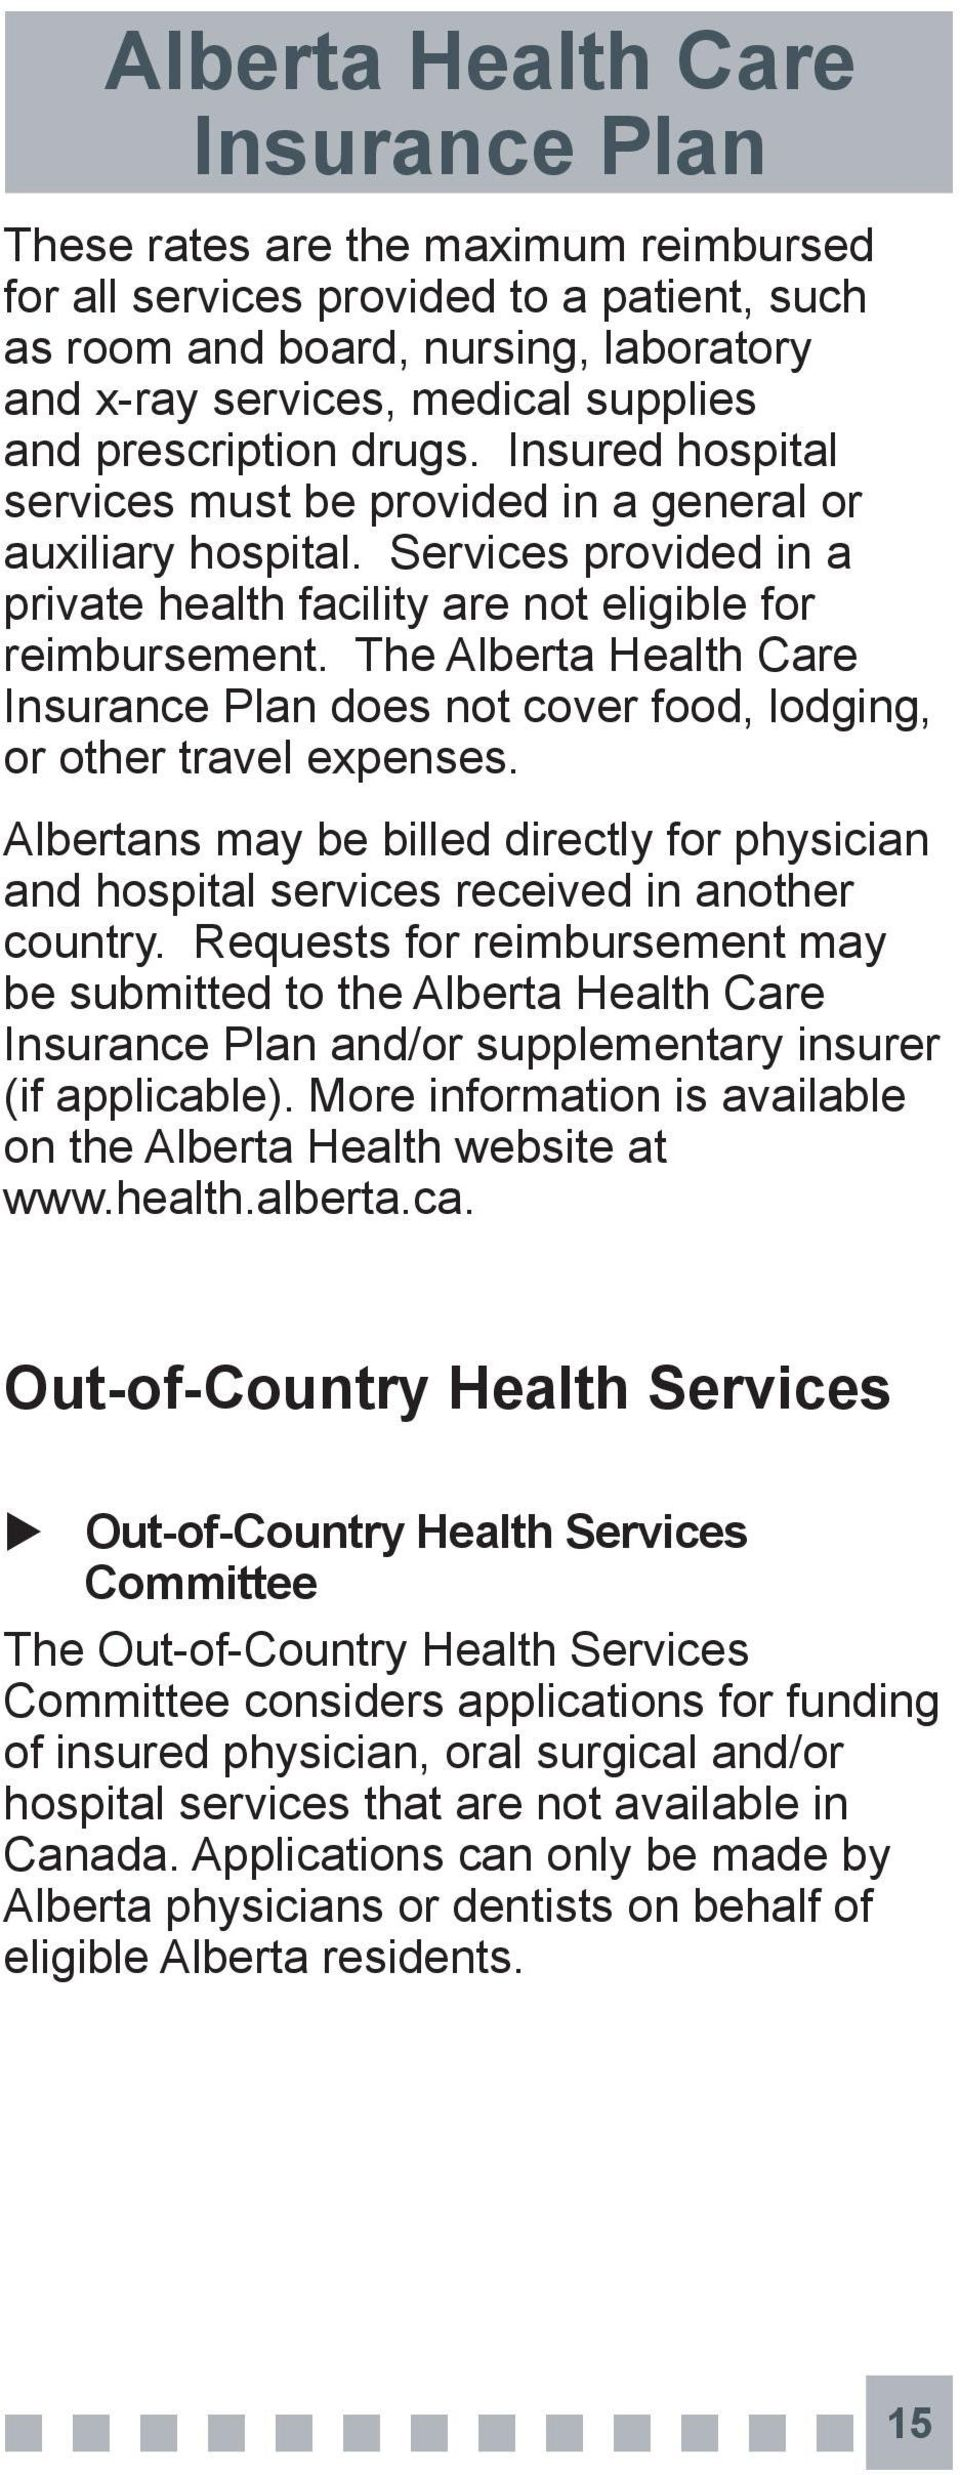 The Alberta Health Care does not cover food, lodging, or other travel expenses. Albertans may be billed directly for physician and hospital services received in another country.